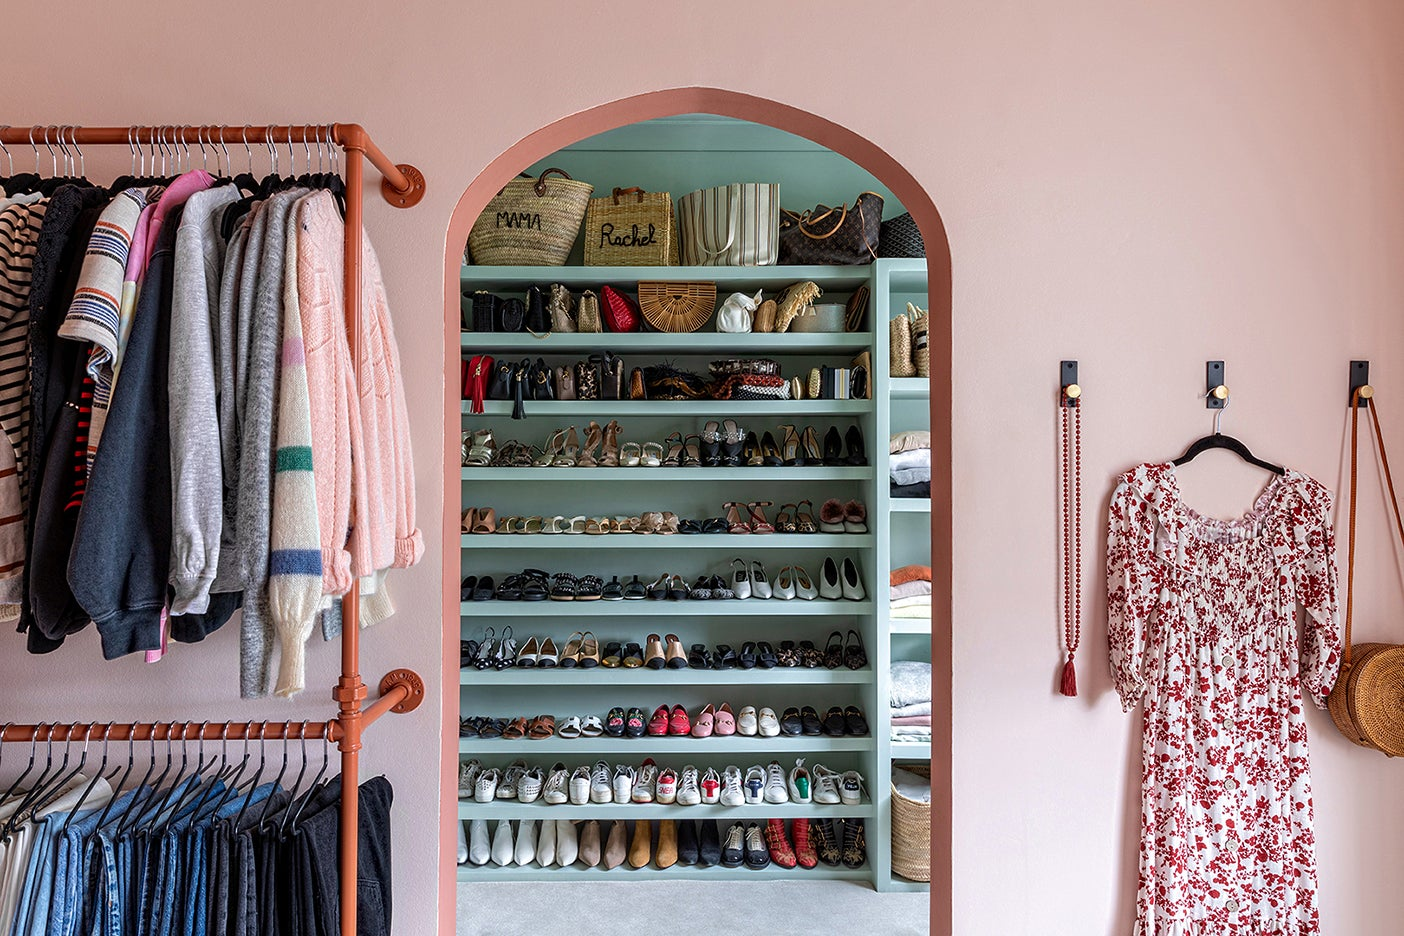 pink archway leading into blue closet